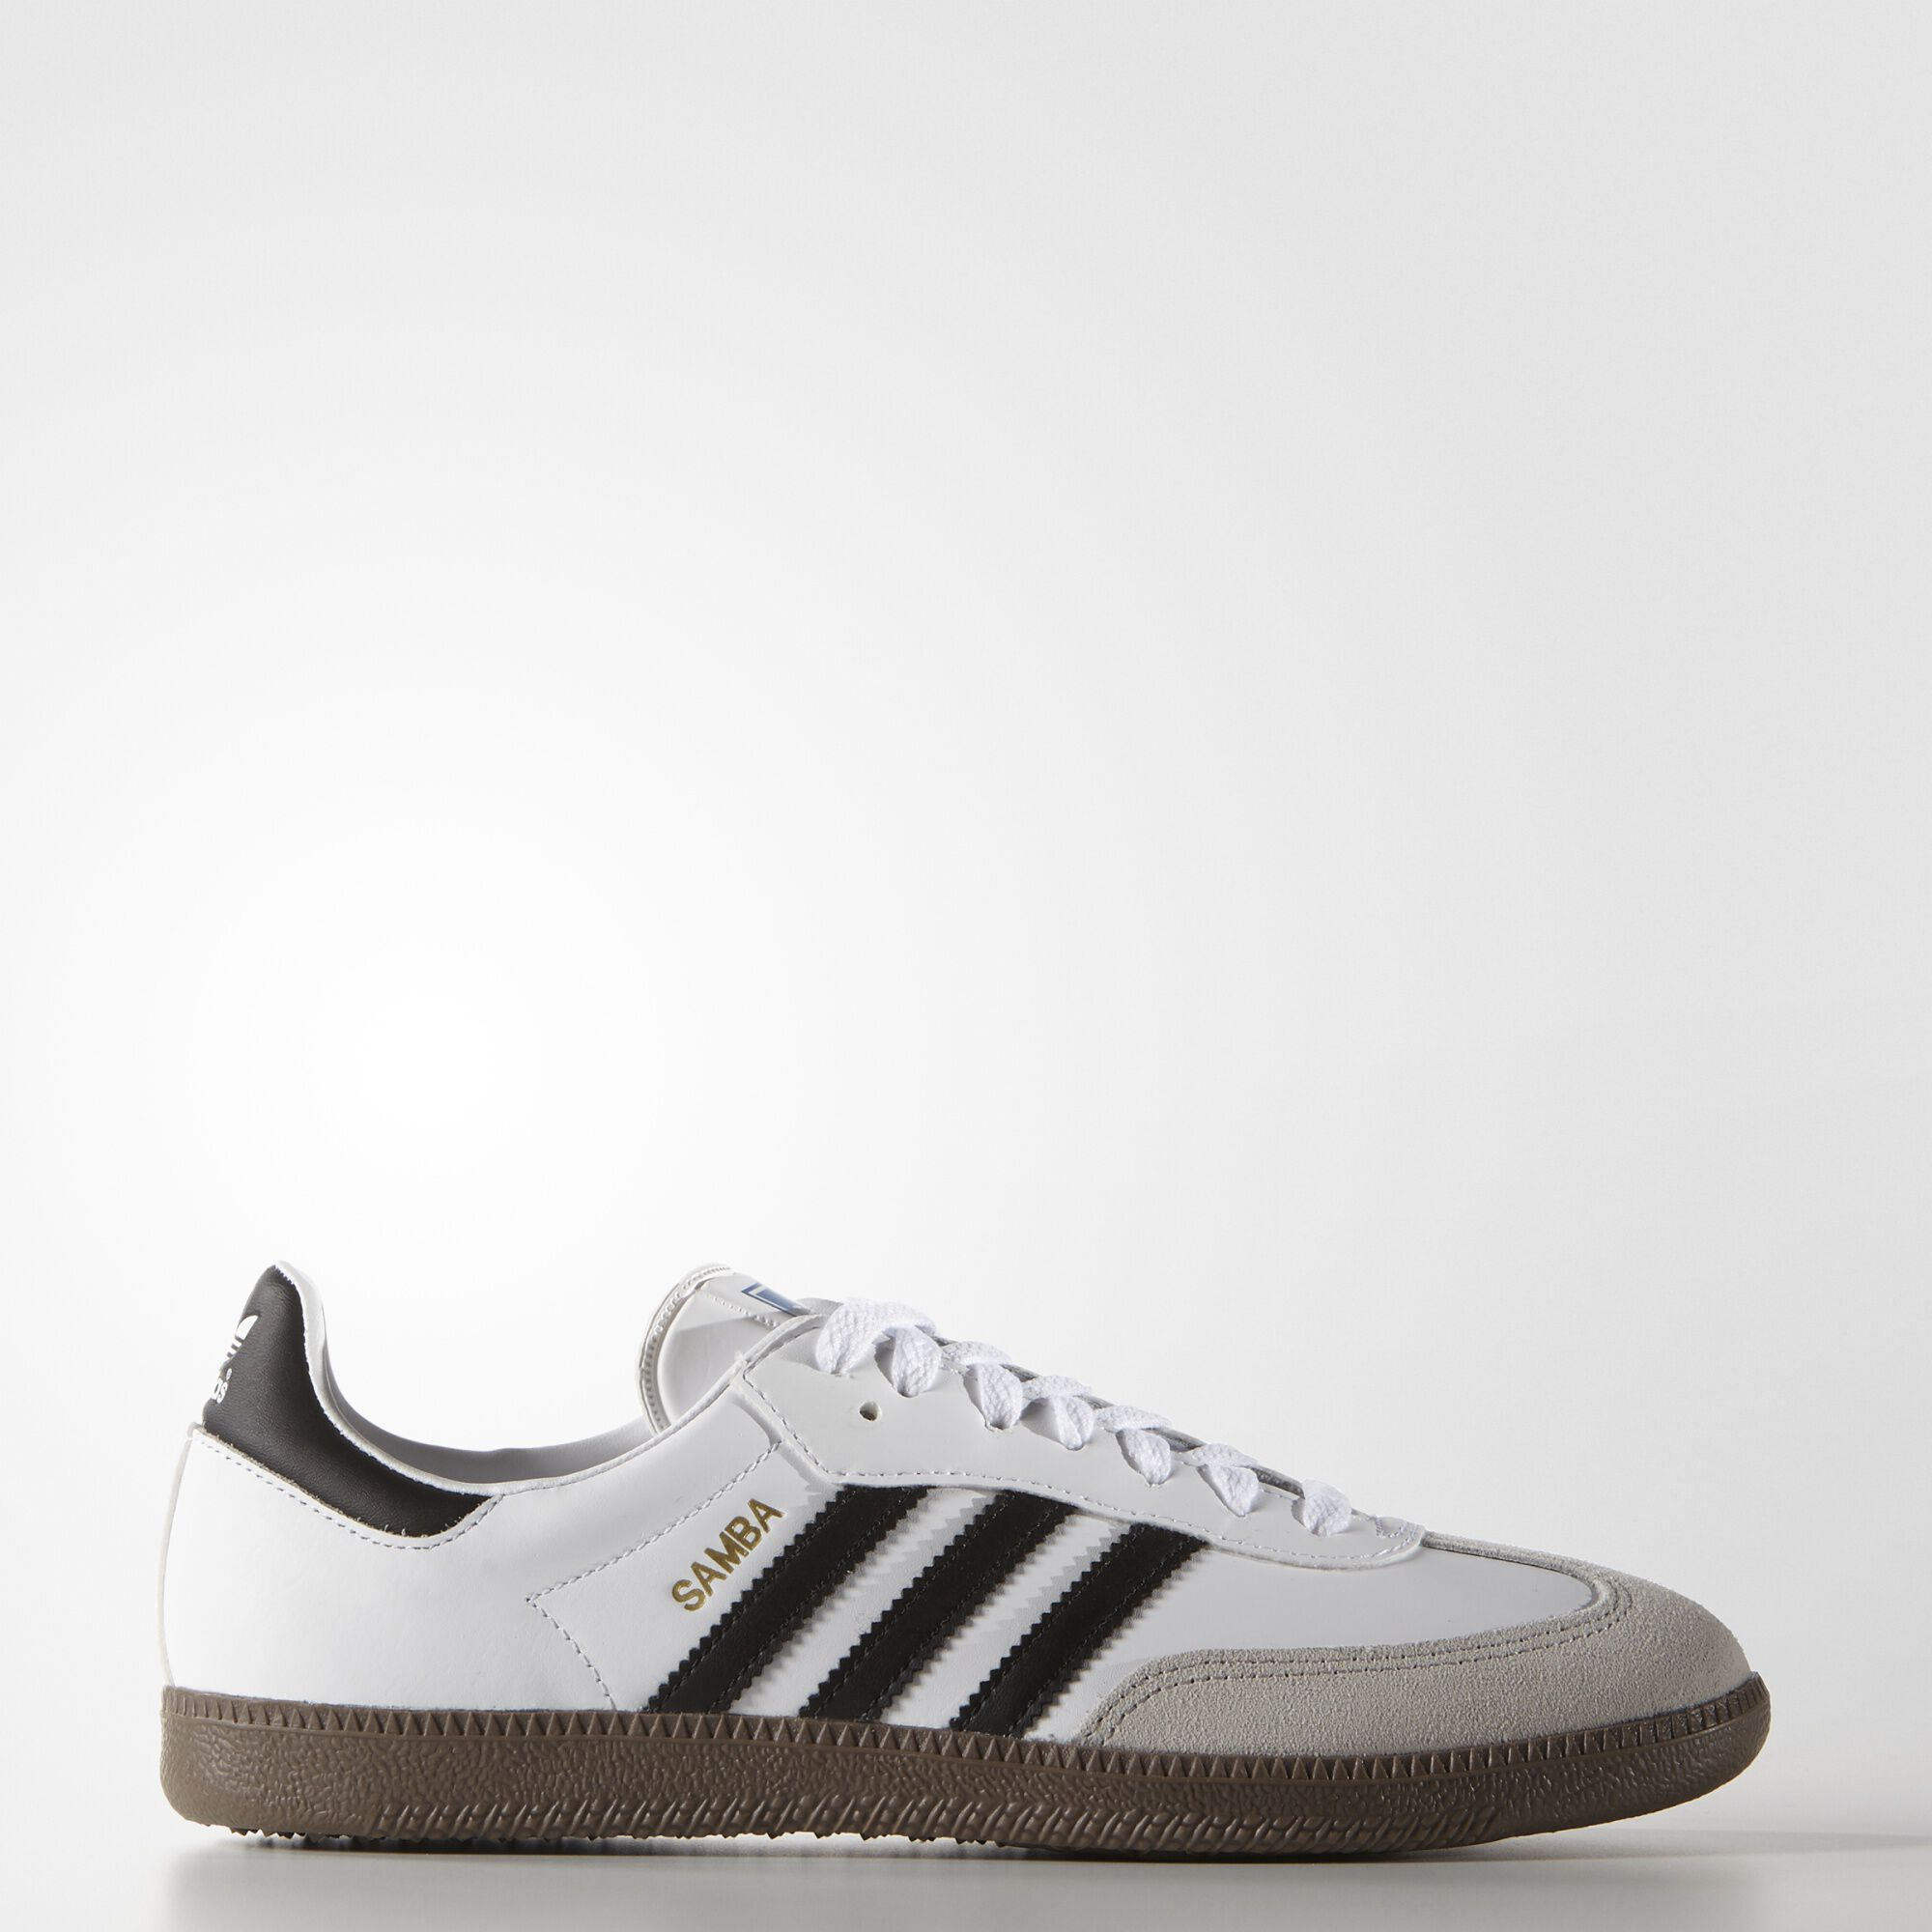 Adidas Samba Shoes For Men